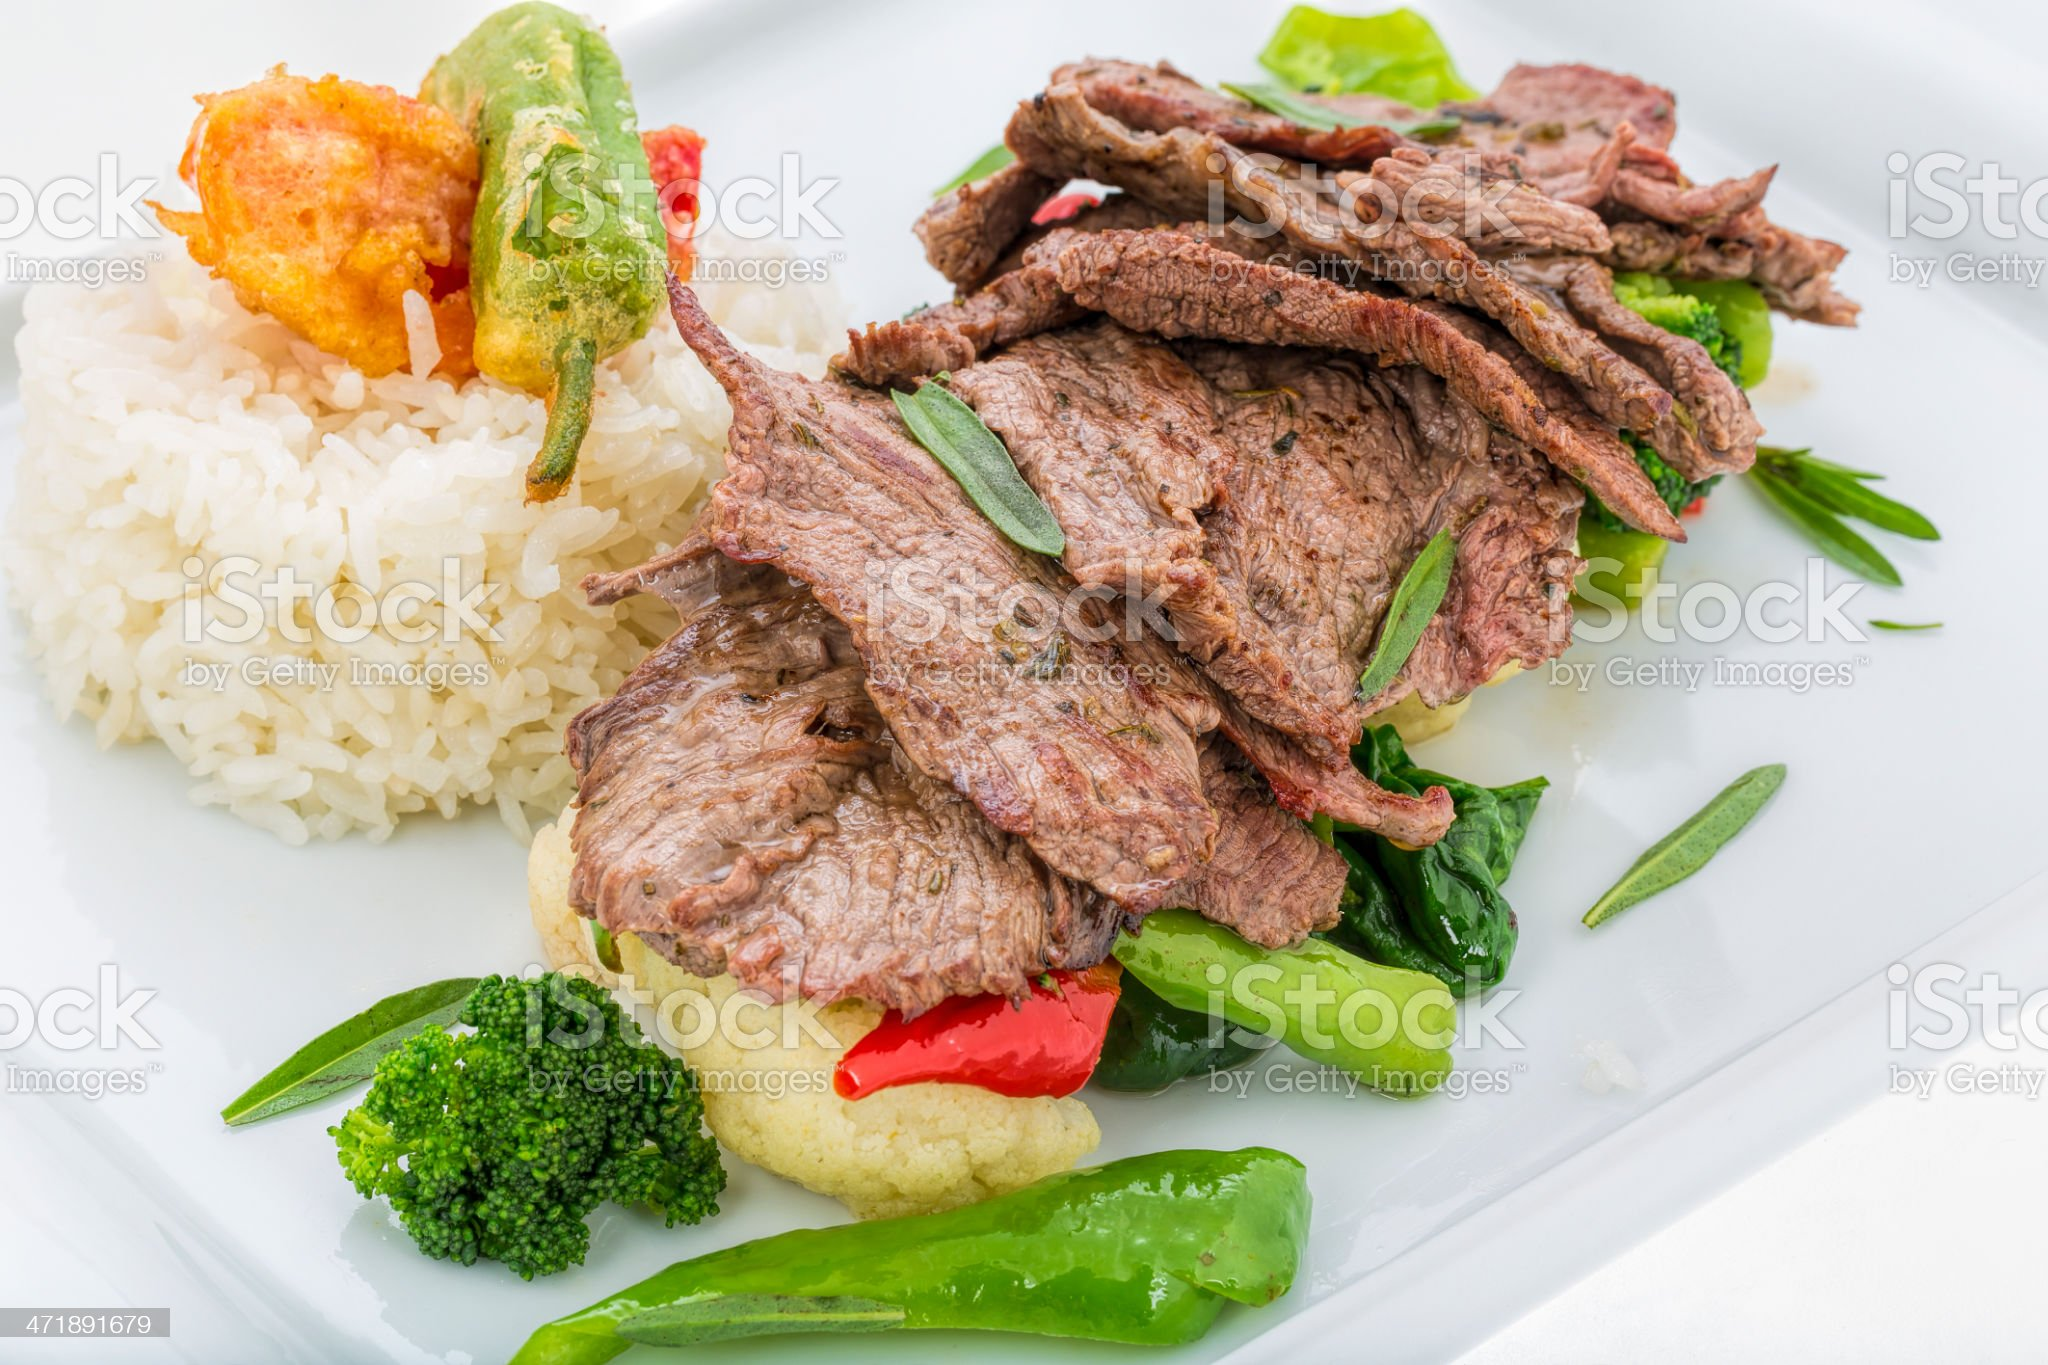 Grilled beef - steak royalty-free stock photo